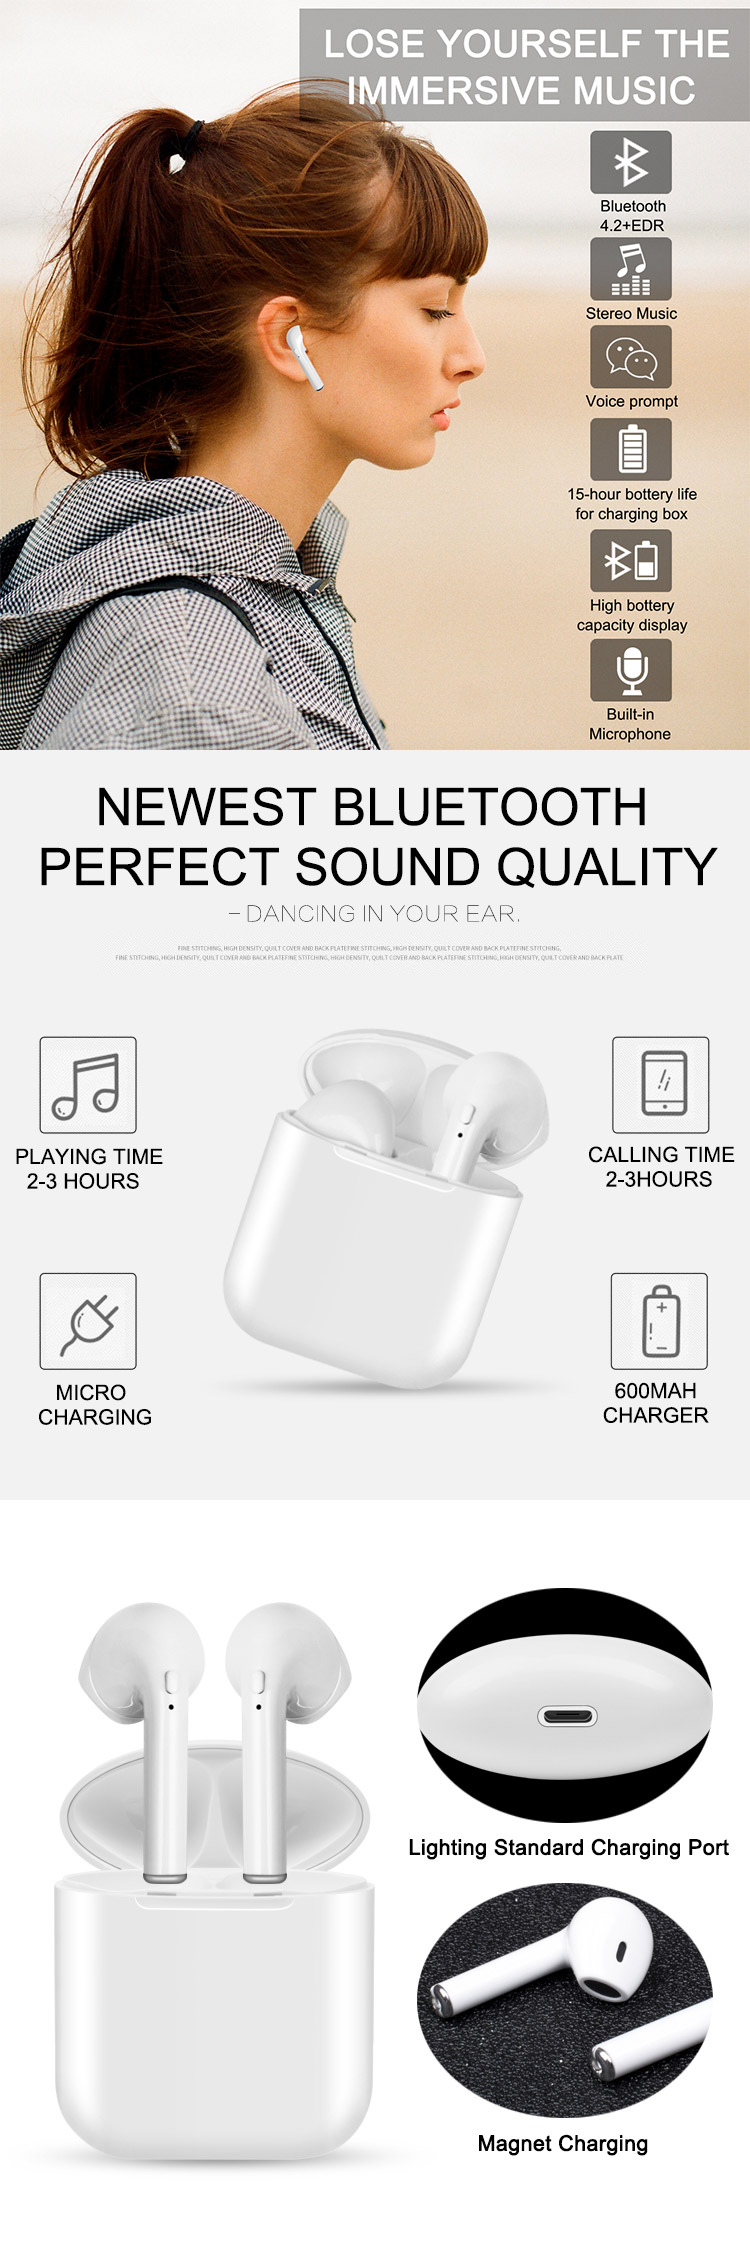 Good sell private i9 wireless headphone, bt mini earphone for ecouteur pour telephone/i7/i8/i9s with charging case